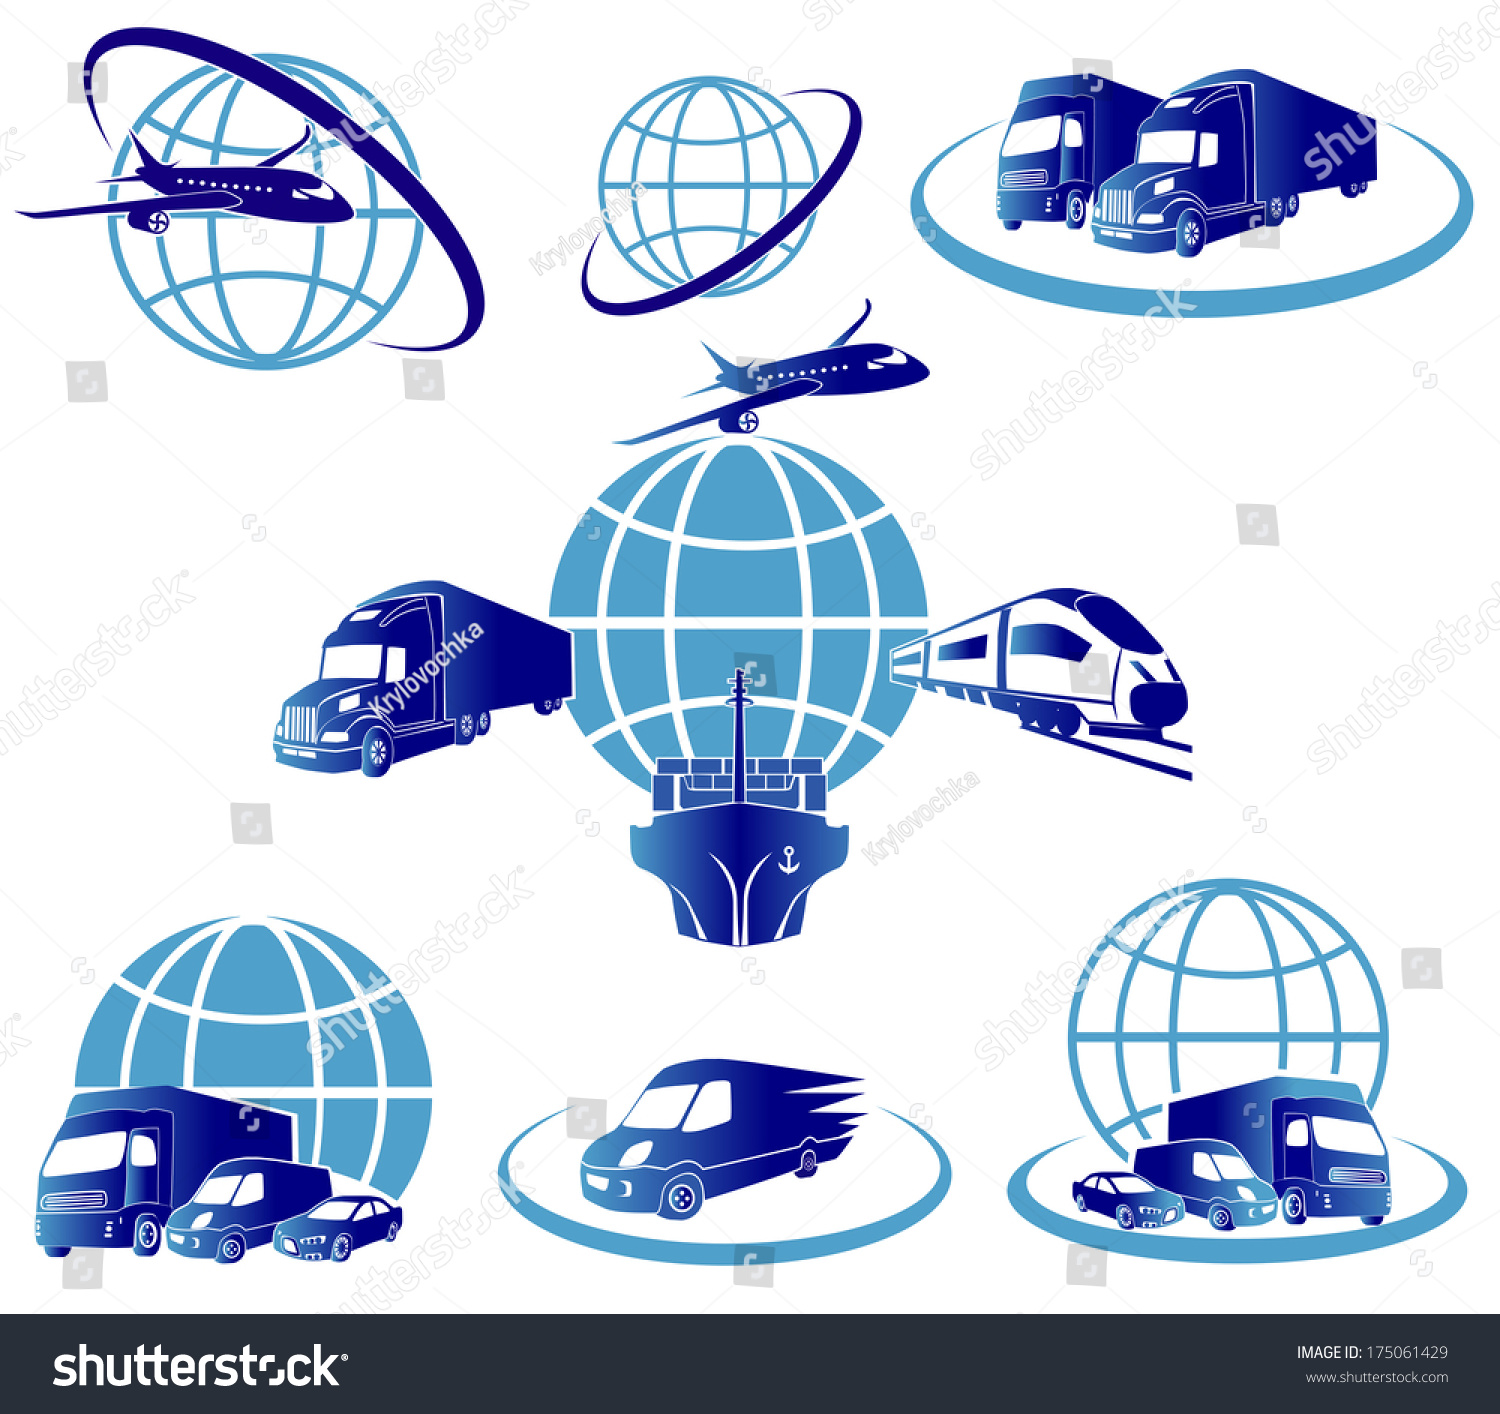 Global logistics concept illustration globe airplane stock for Global design company